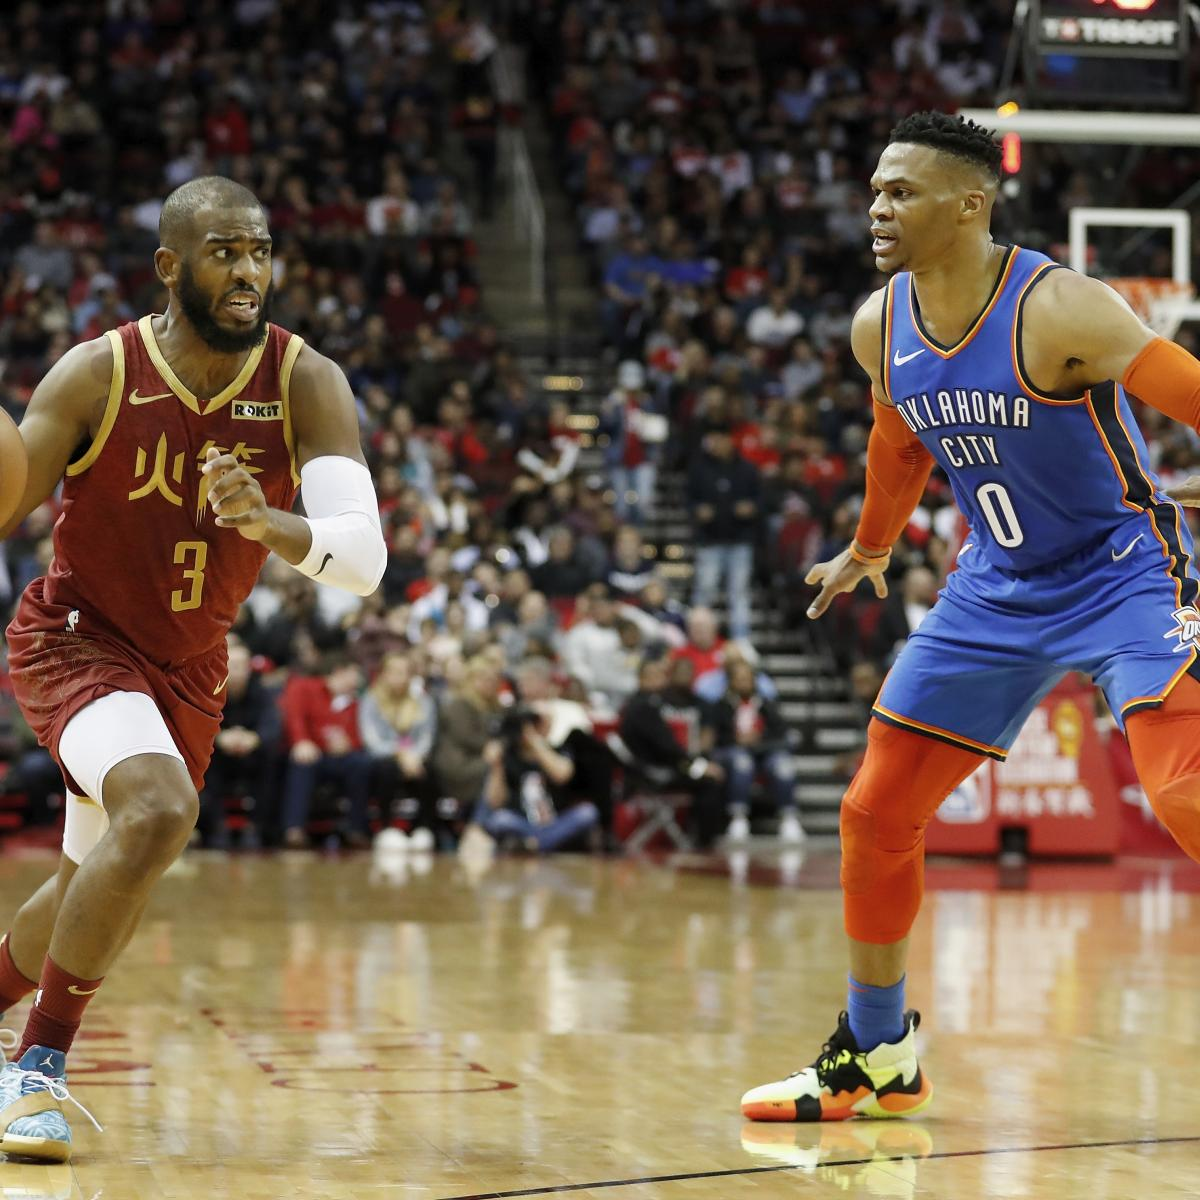 As soon as the Oklahoma City Thunder traded Paul George to the Los Angeles Clippers, it was only a matter of time before Russell Westbrook would be moved, too...